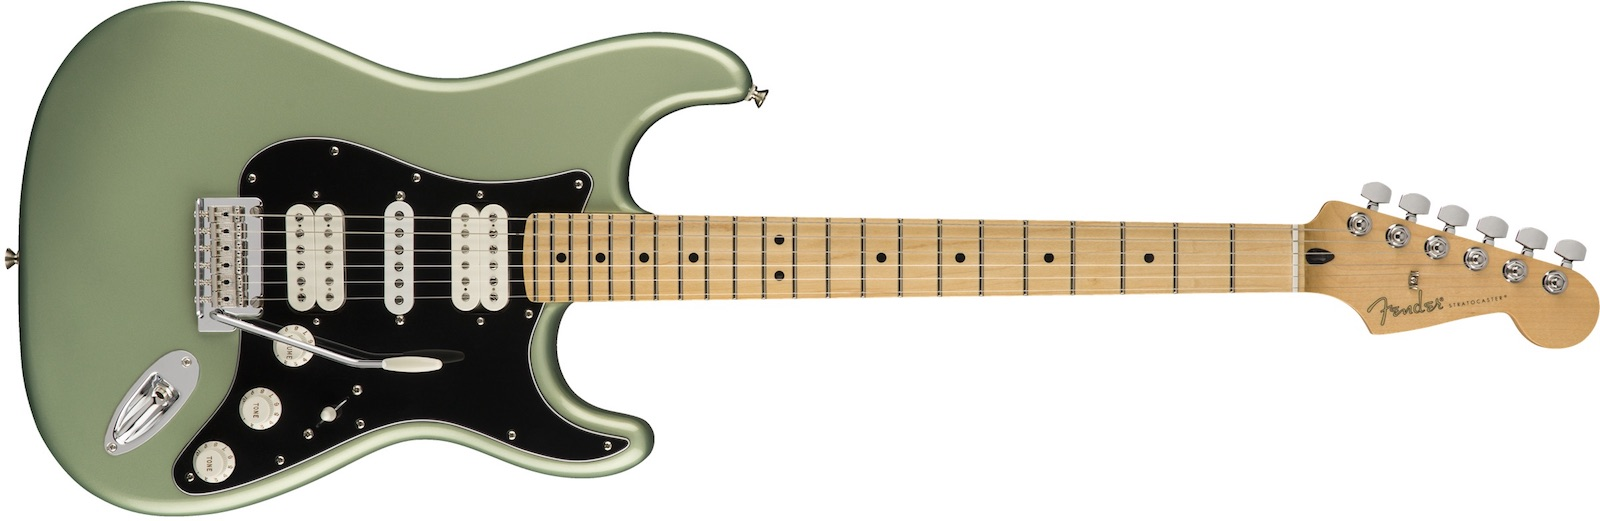 【新品】Fender Player Stratocaster HSH Maple Fingerboard ~Sage Green Metallic~【お取り寄せ】【送料無料】【池袋店】